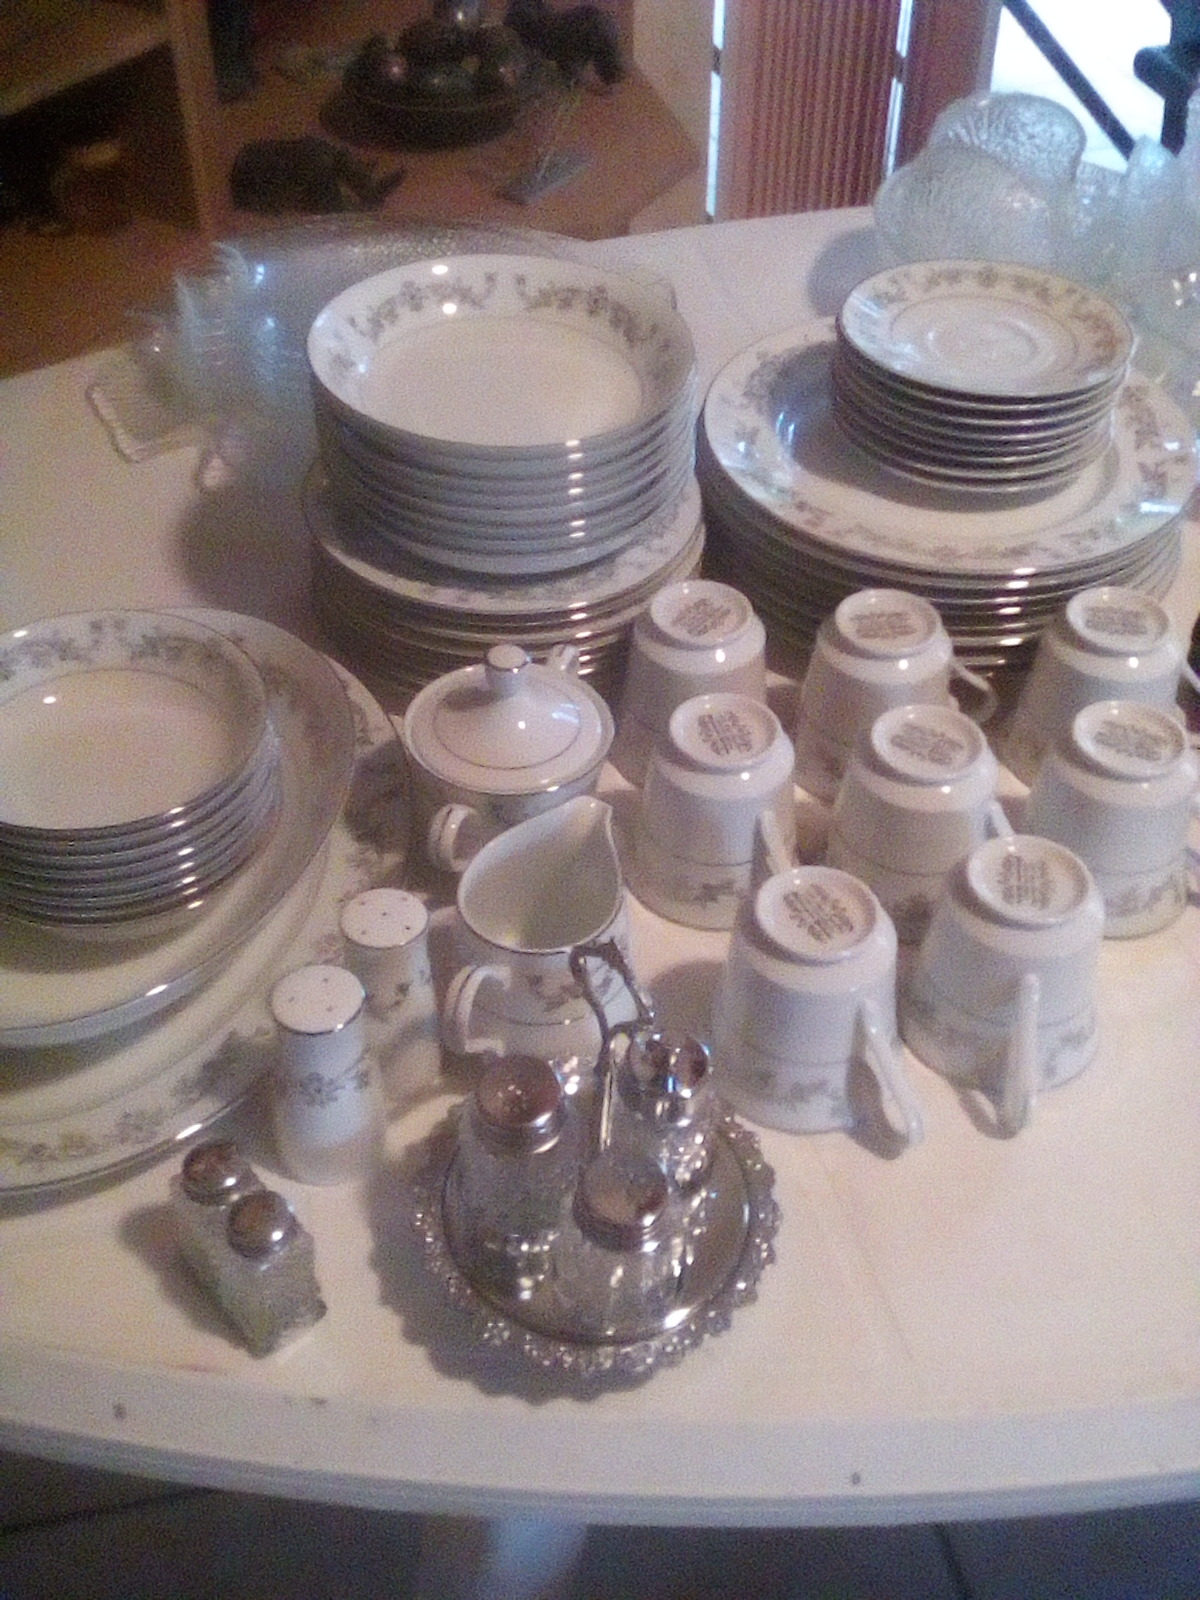 Dinner set for 8 people for sale